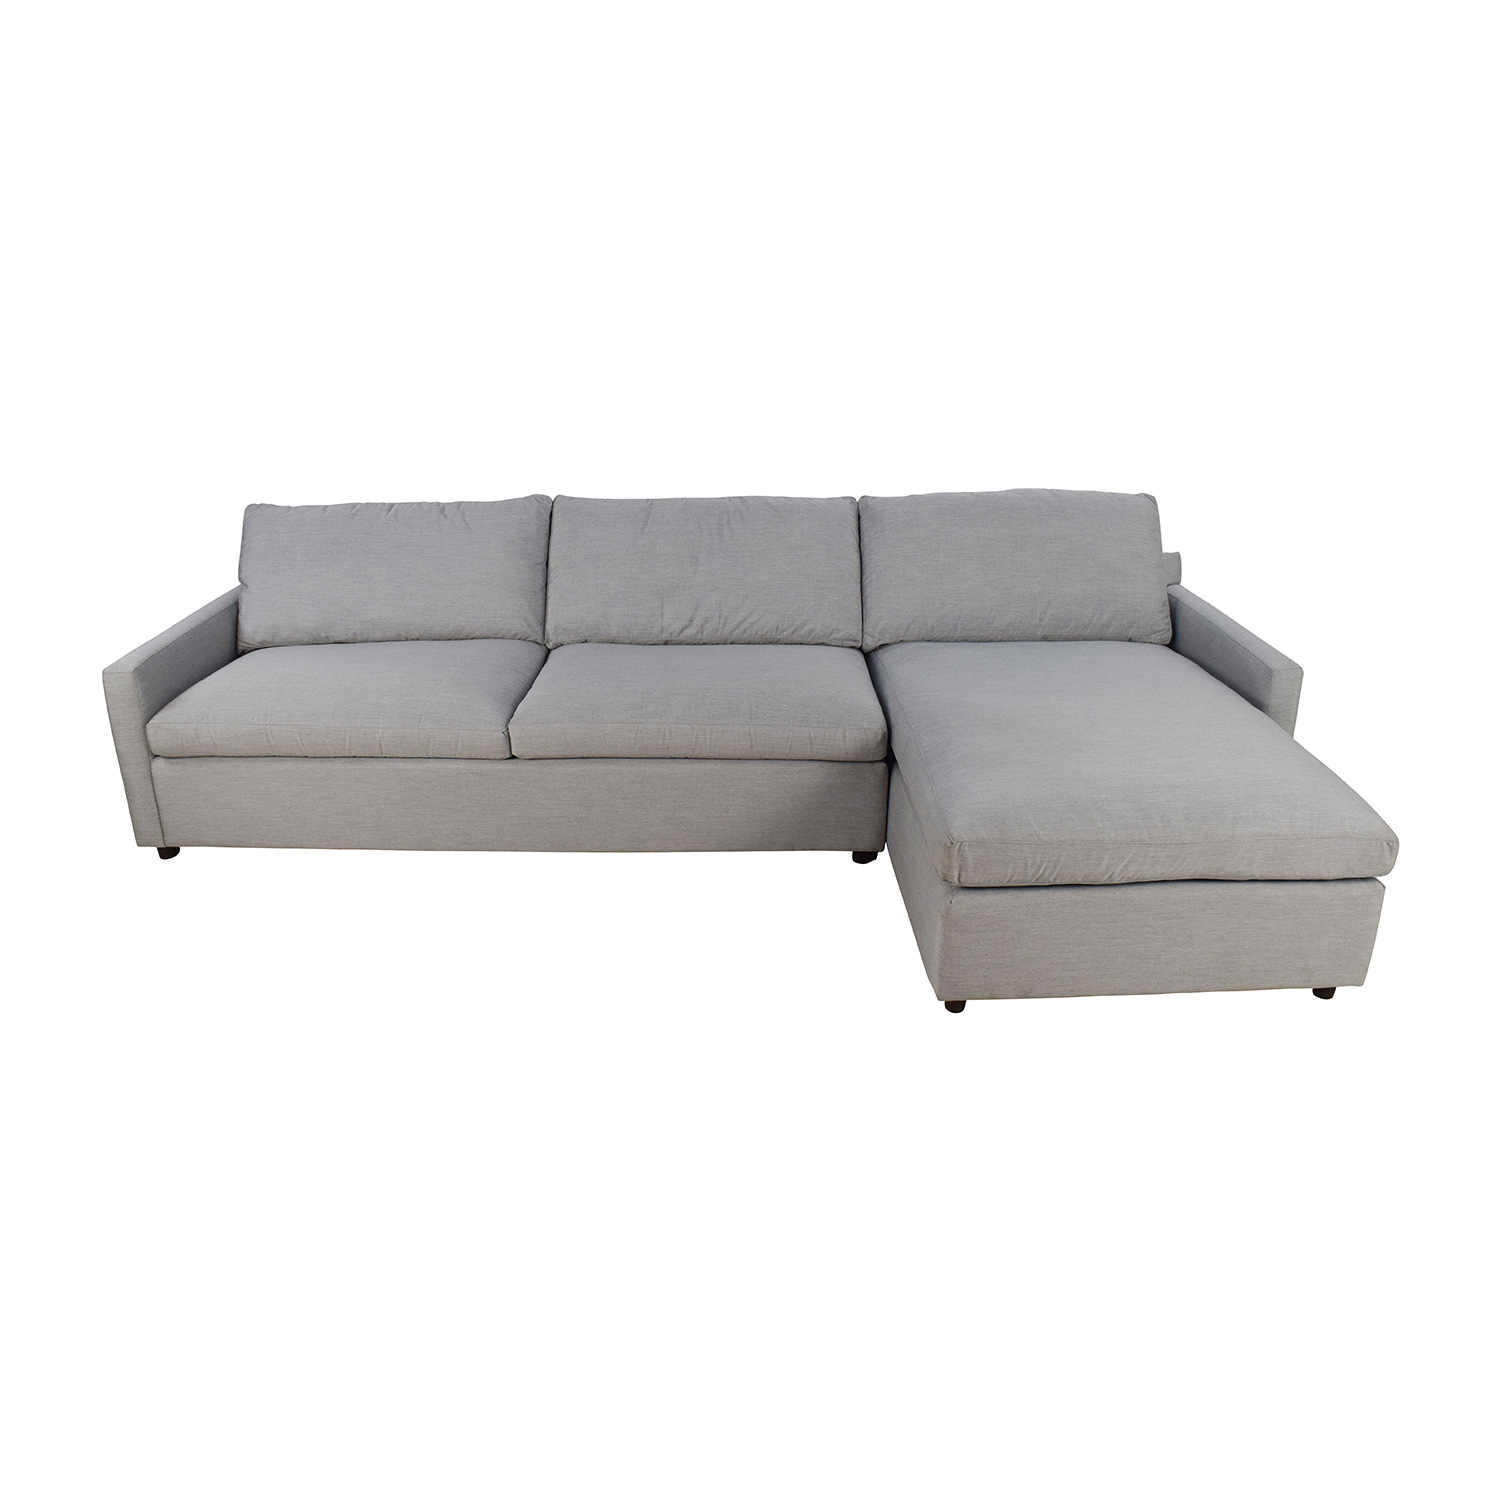 west elm sofa sleeper bed chesterfield style elegant sectional sofas